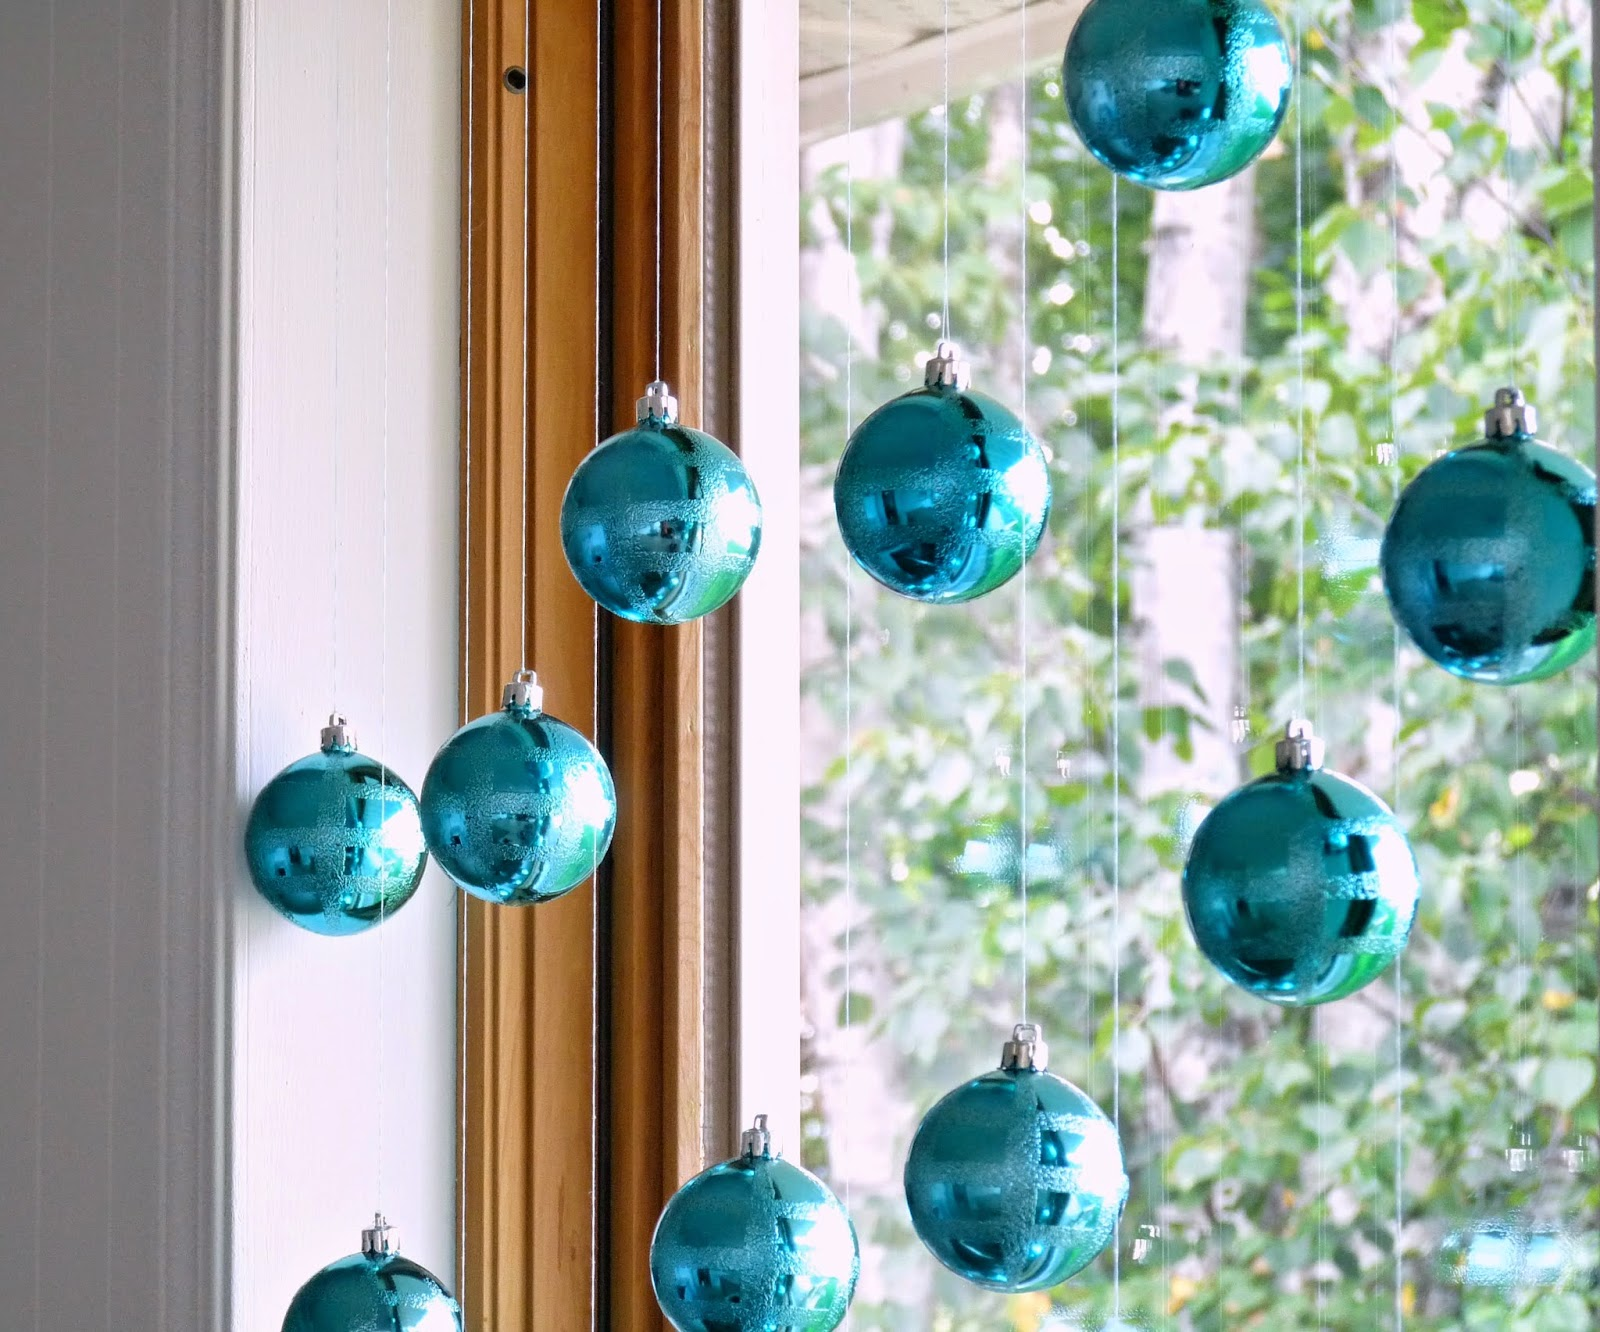 How To Hang Christmas Ornaments In A Window No Damage